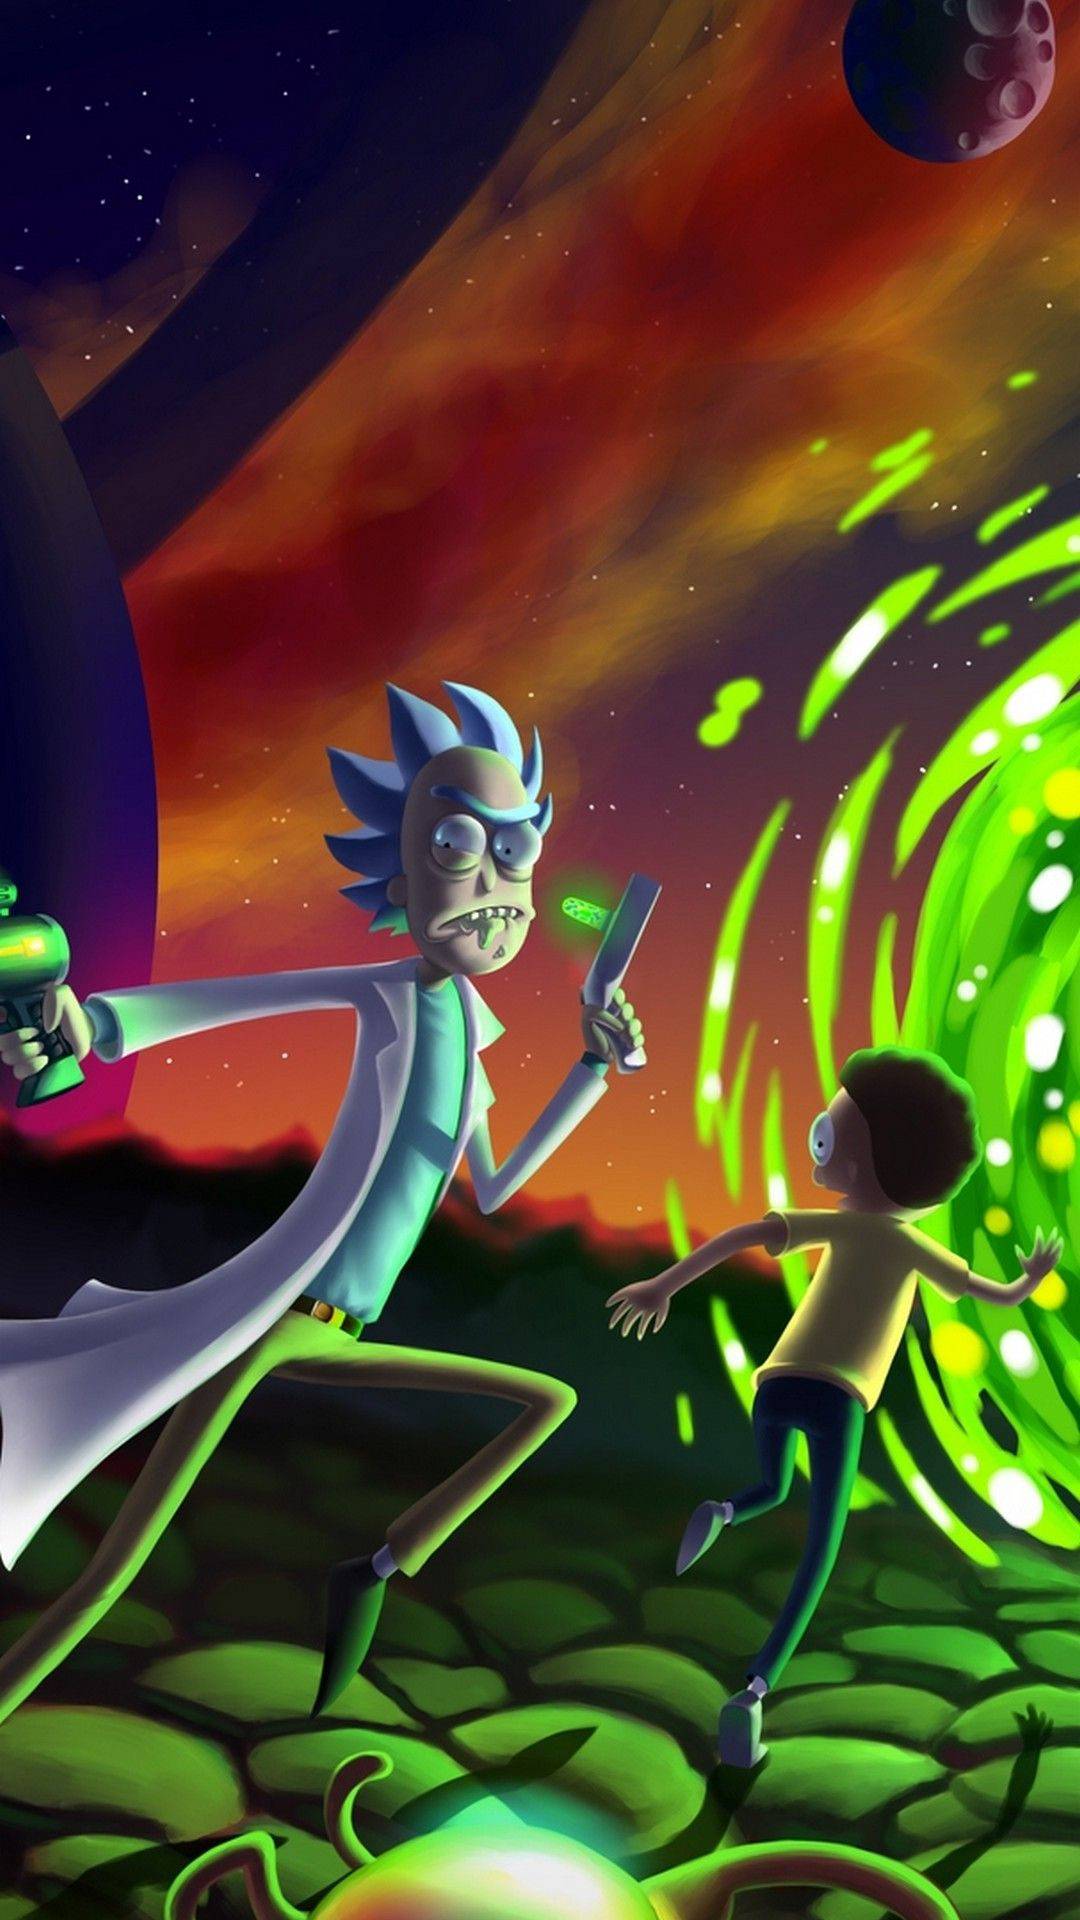 Rick And Morty Android Wallpaper Best Movie Poster